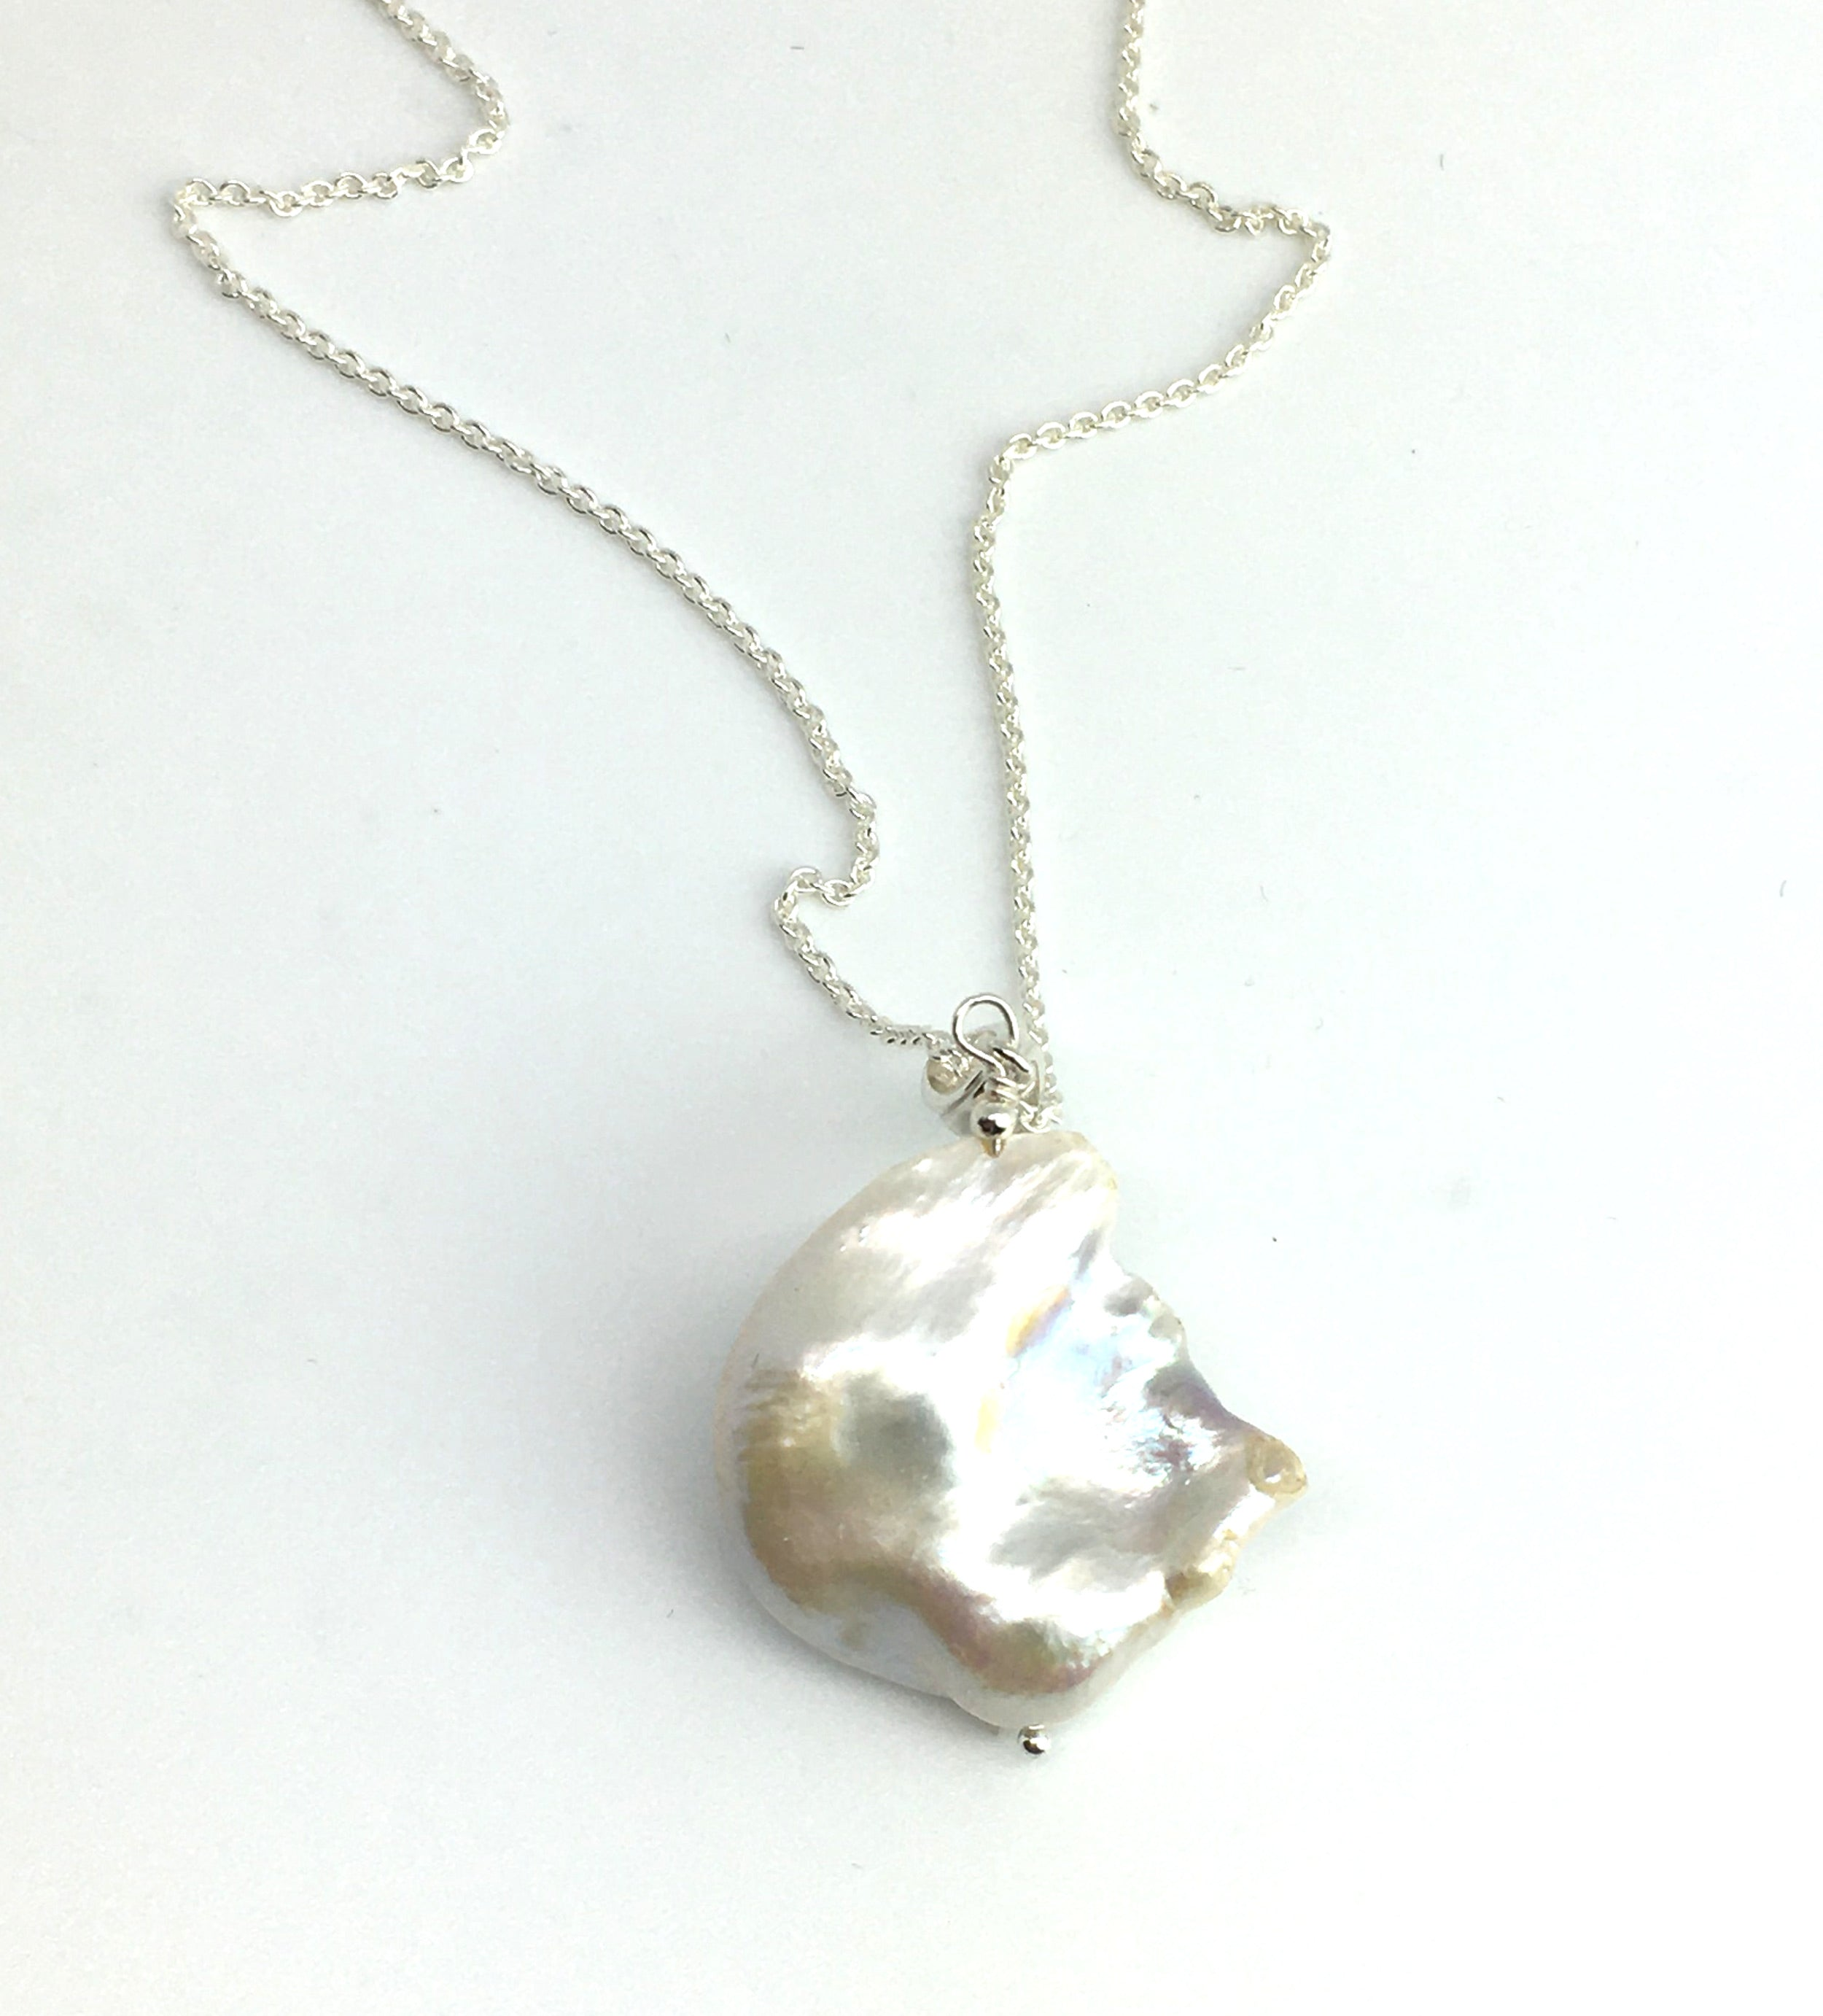 Cobblestone Pearl Pendant Necklace - One of a Kind